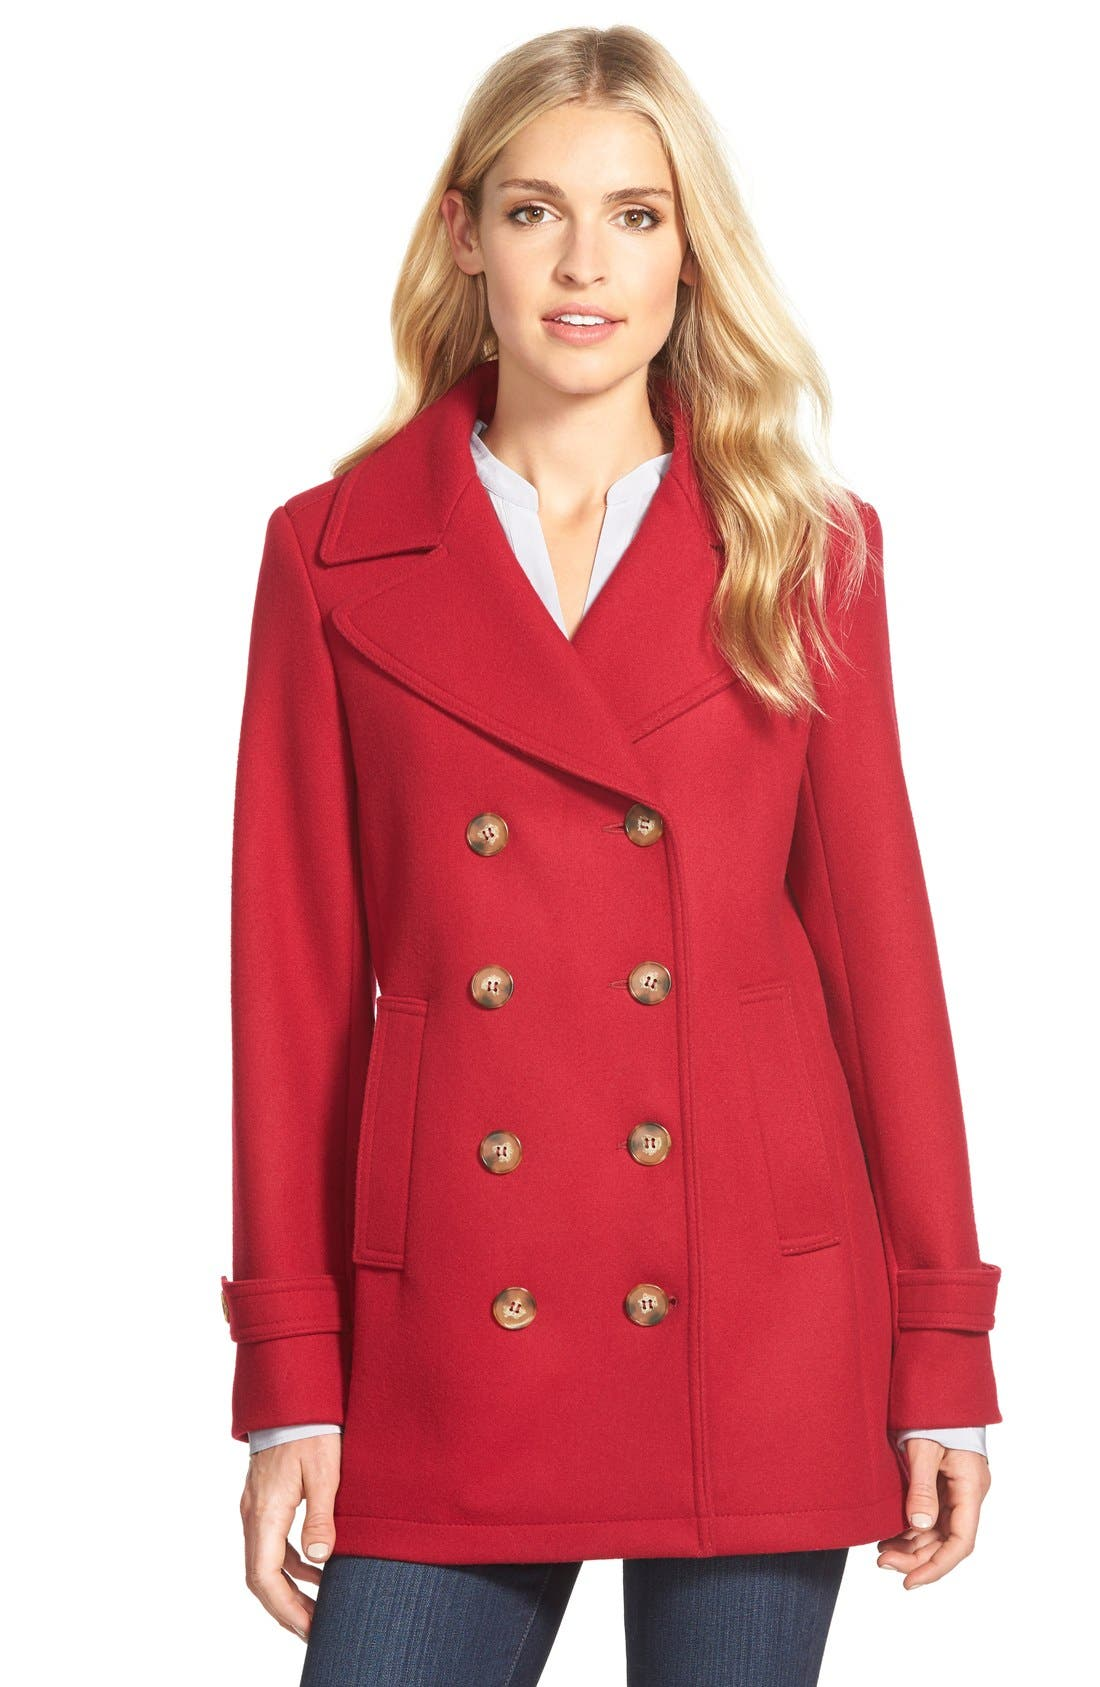 Alternate Image 1 Selected - Kristen Blake Wool Blend Peacoat (Regular & Petite)